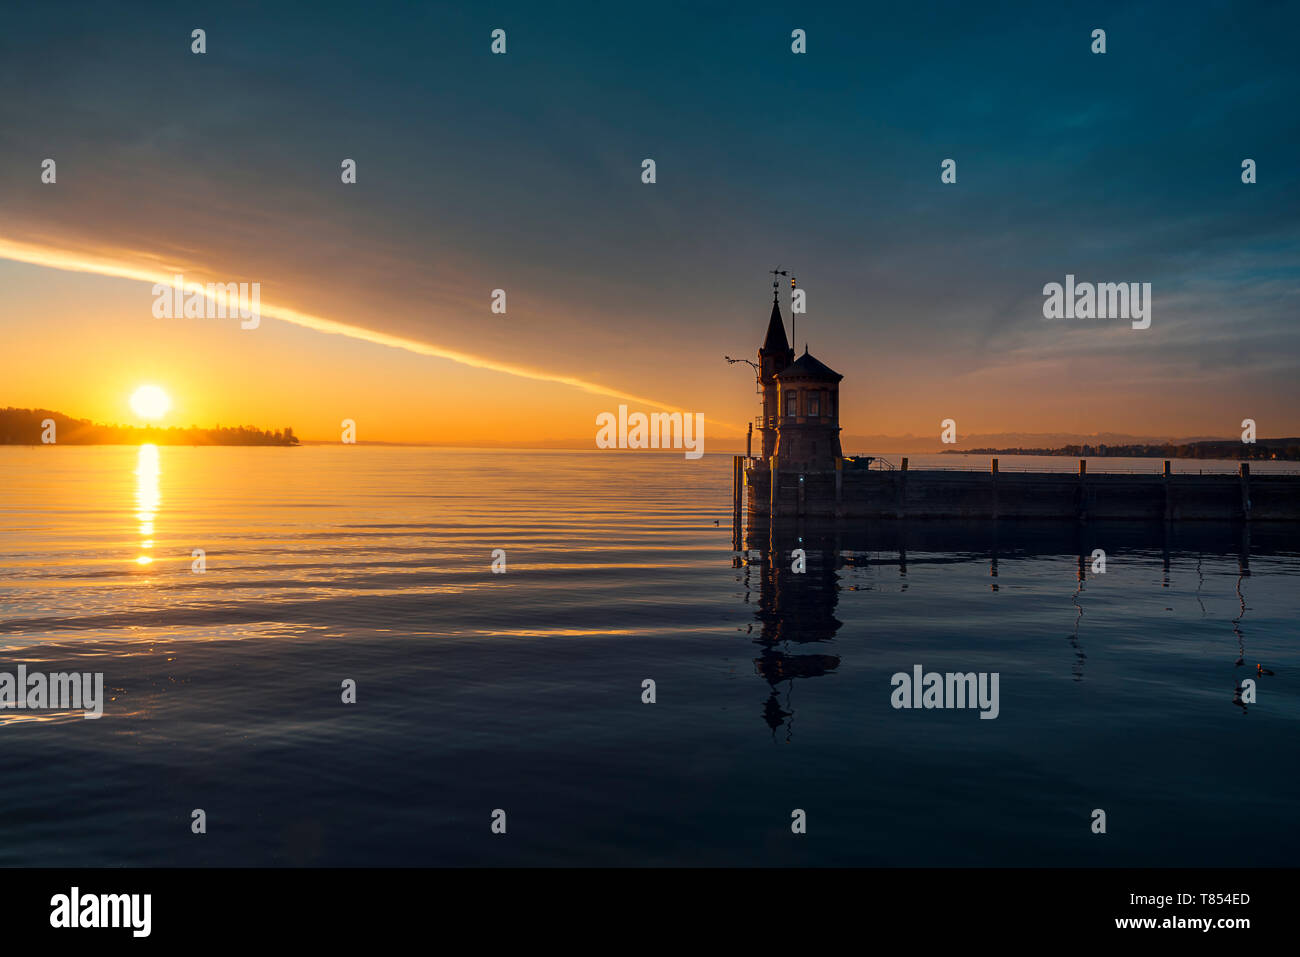 Early summer morning on lake Bodensee, Konstanz, Germany. Sunrise over water and lighthouse. Cloudscape and sun reflected on the water. - Stock Image